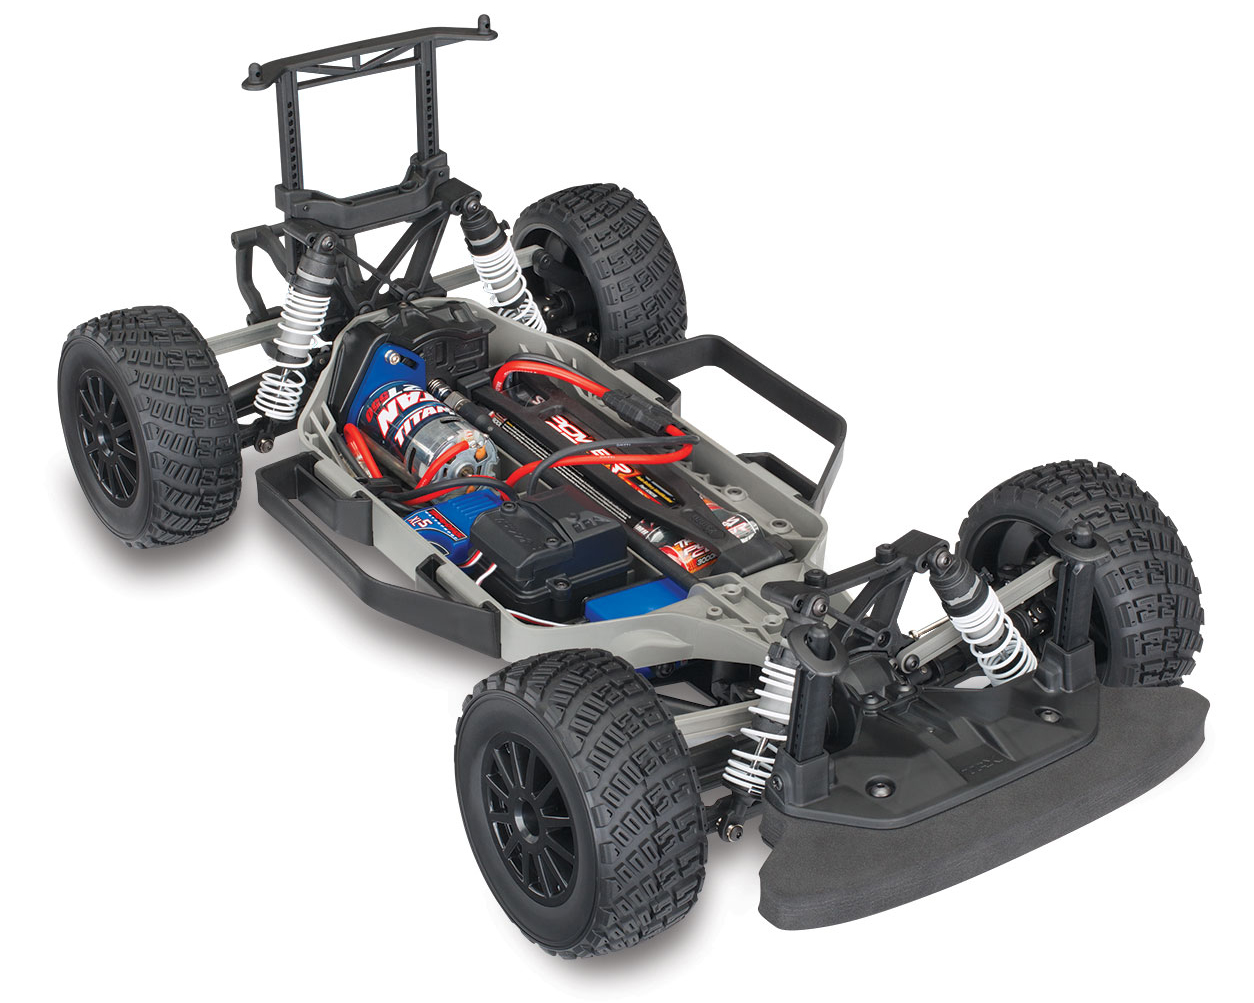 74054-5-Deegan-Rally-chassis-3qtr-front